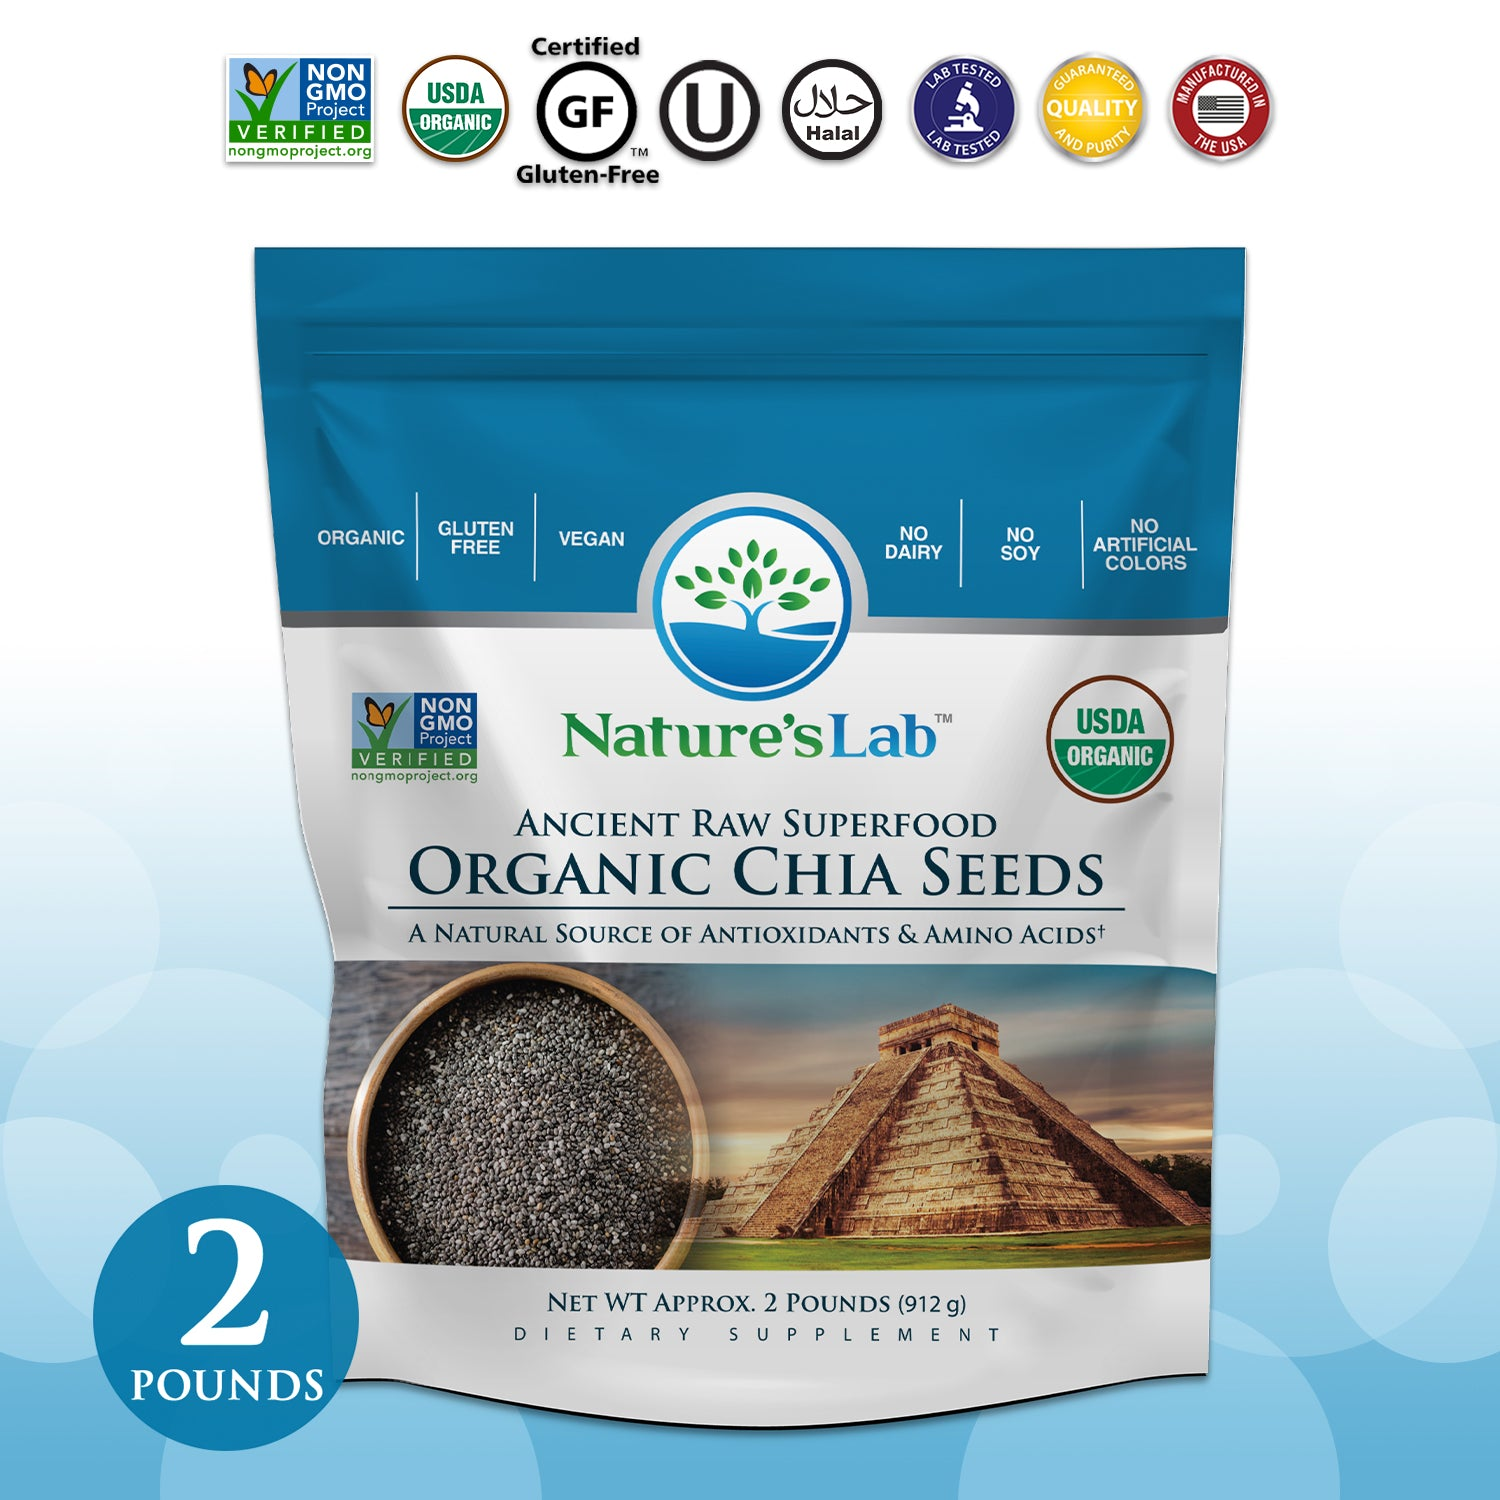 Organic Black Chia Seeds 2 lb bag